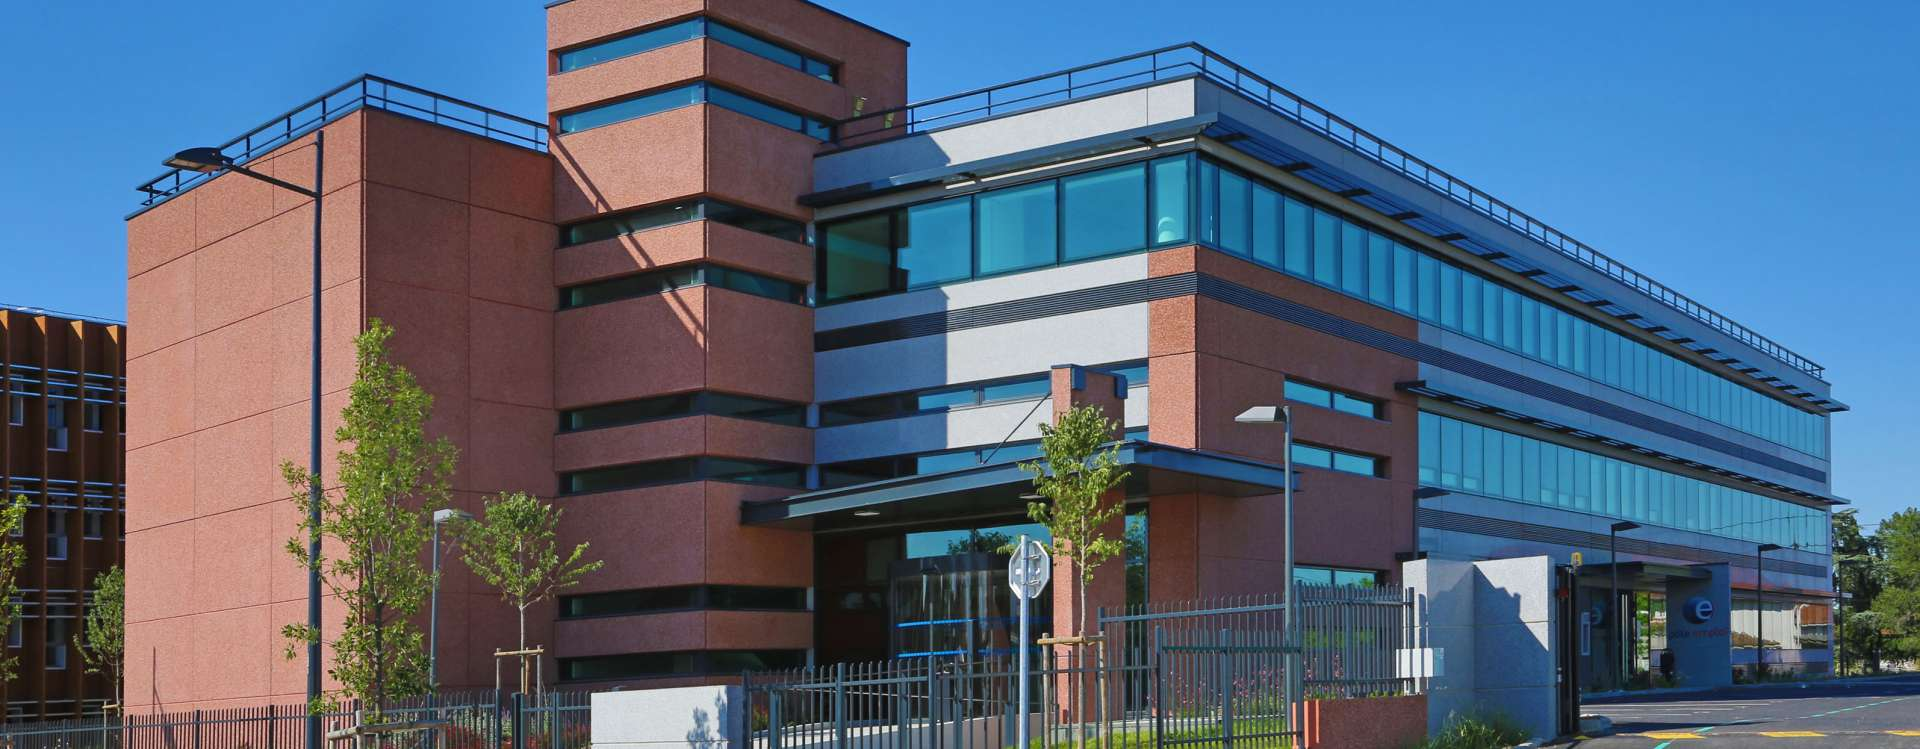 Les Amarantes, in Toulouse Borderouge, 9,000 m² in high-performance offices, including 1,200 m² for rent